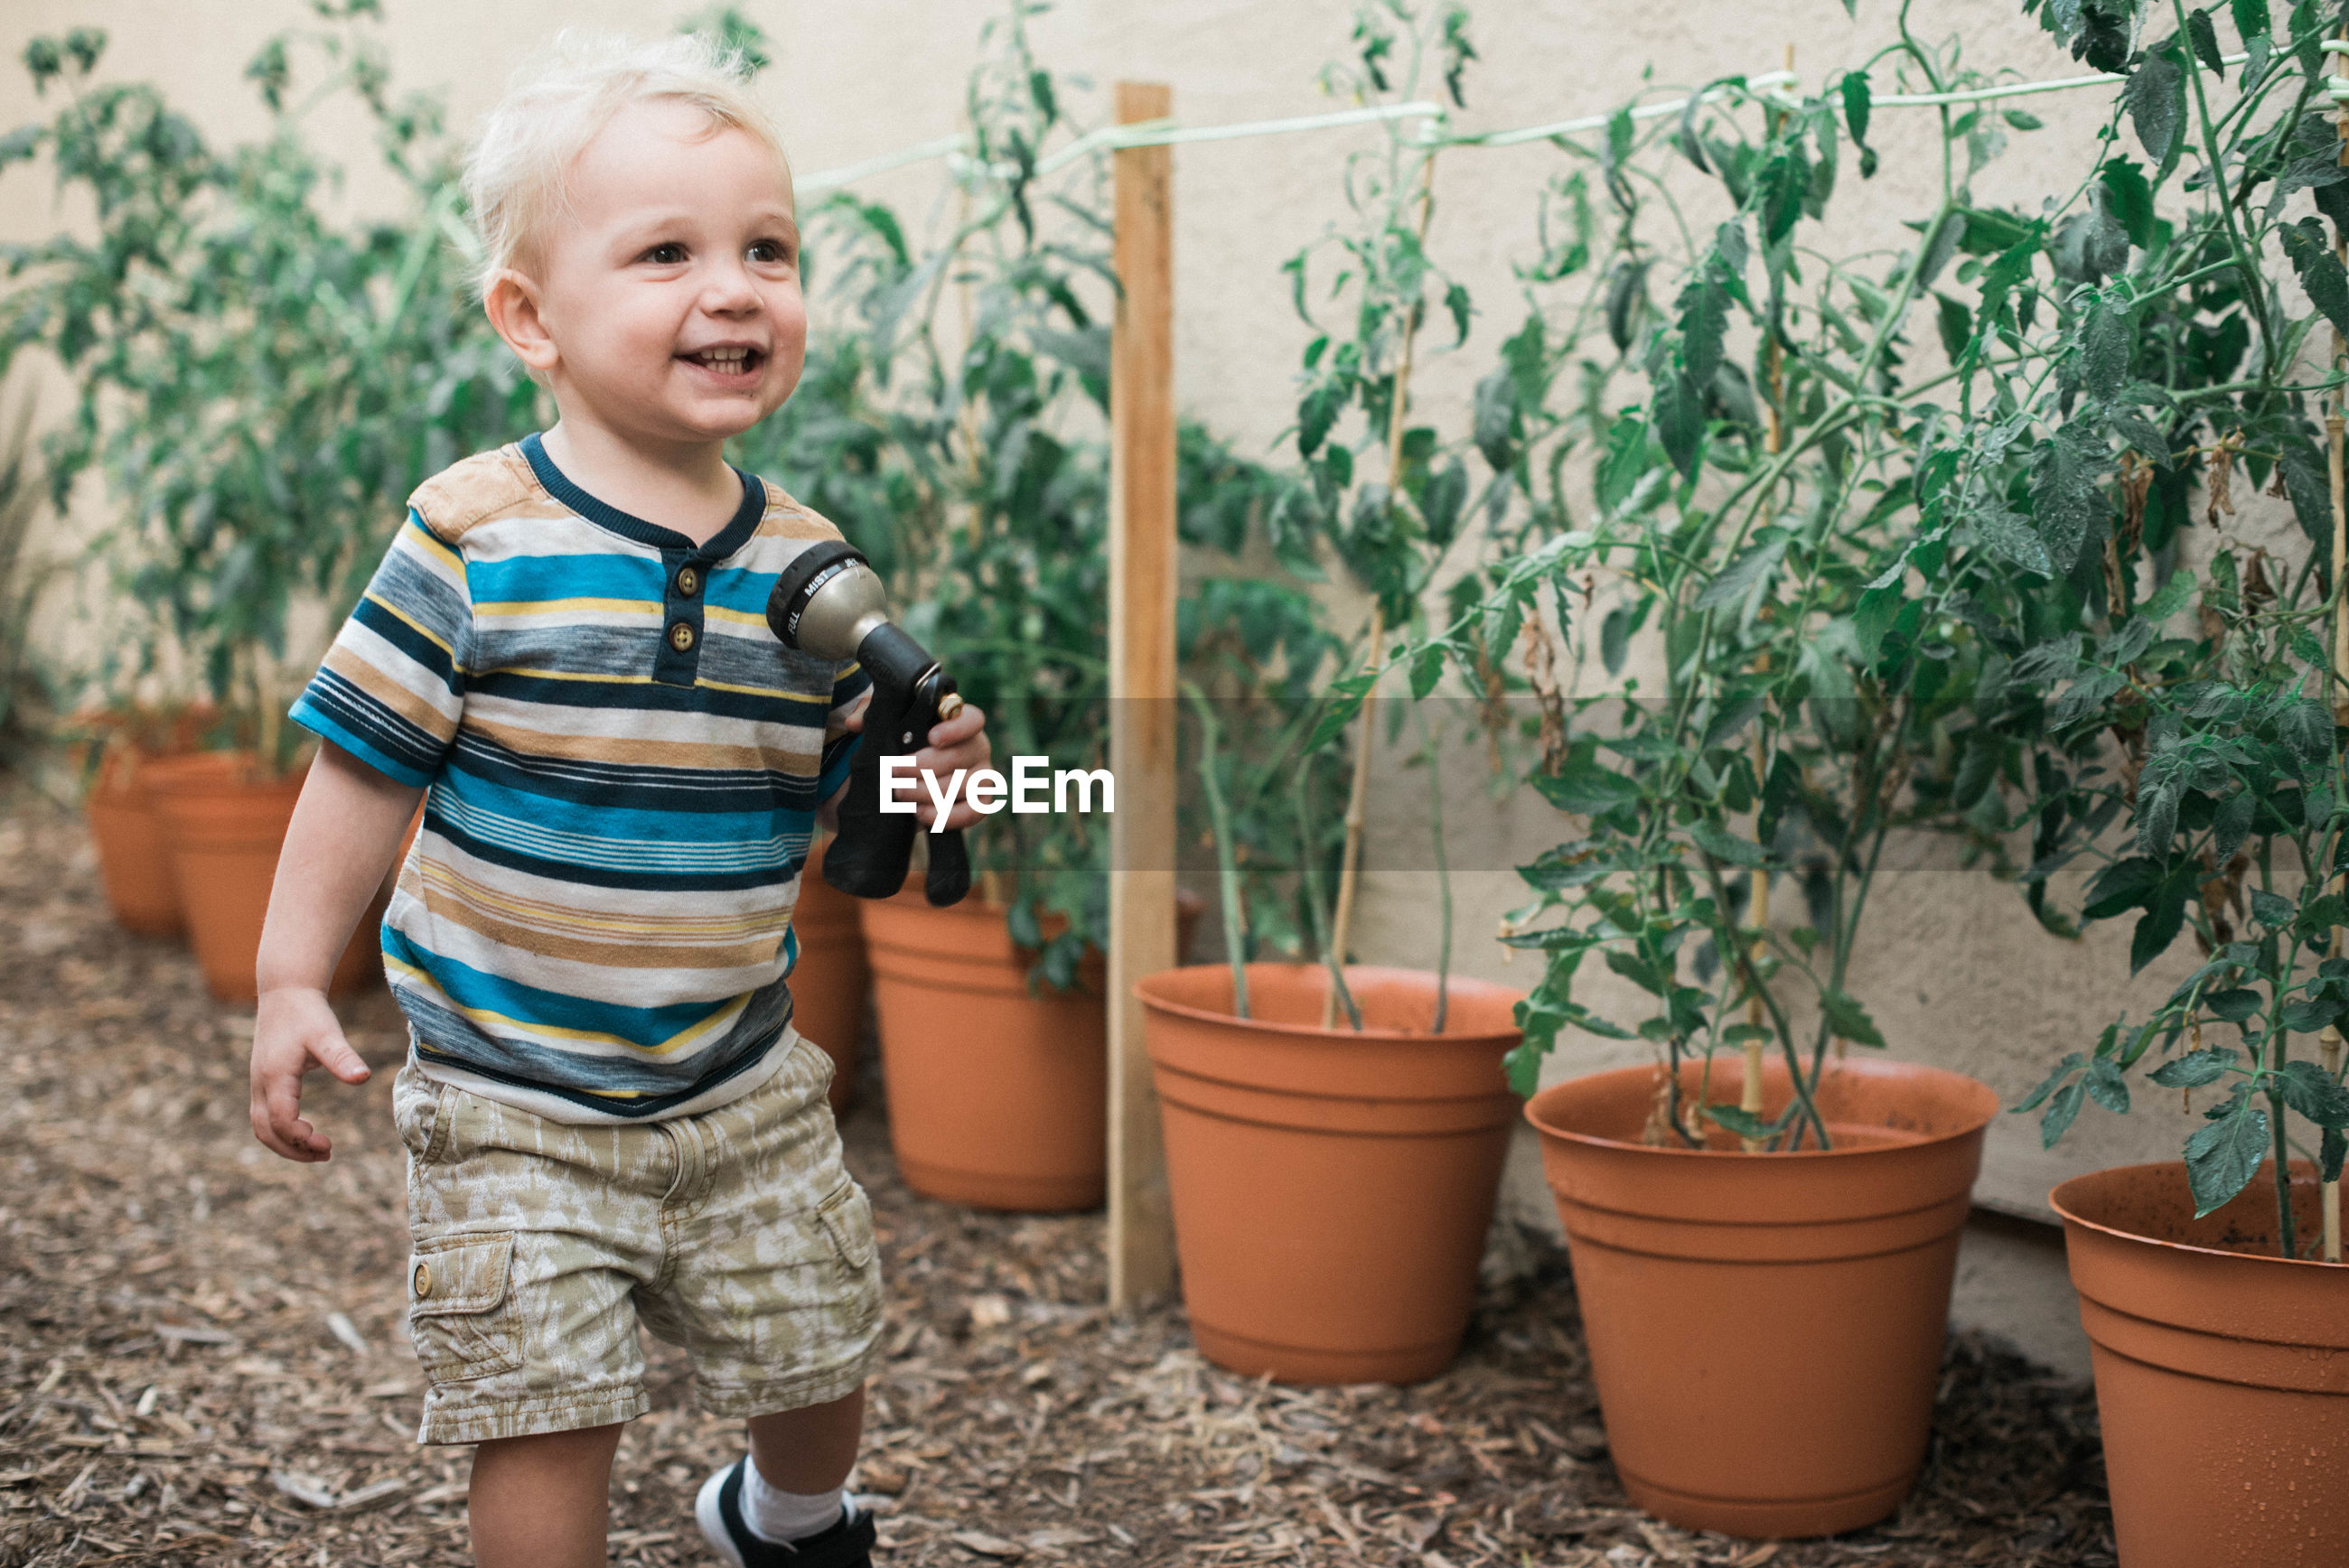 HAPPY BOY STANDING BY POTTED PLANT